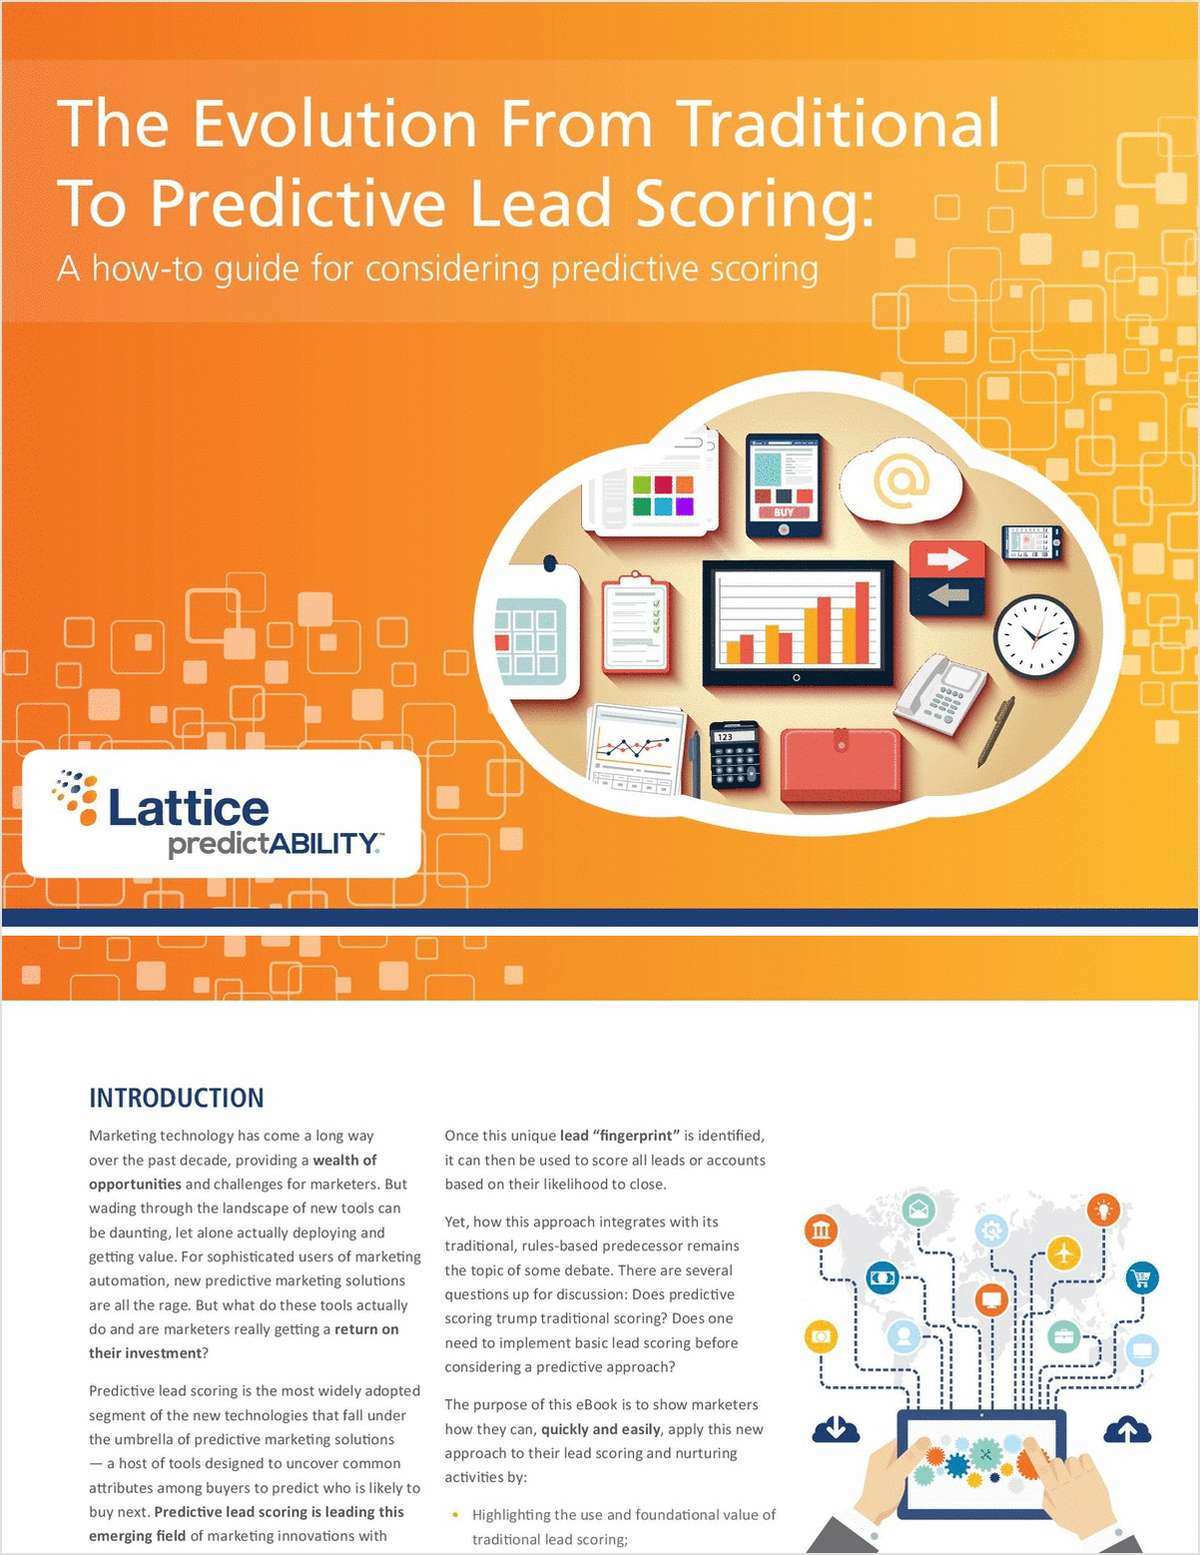 The Evolution of From Traditional to Predictive Lead Scoring